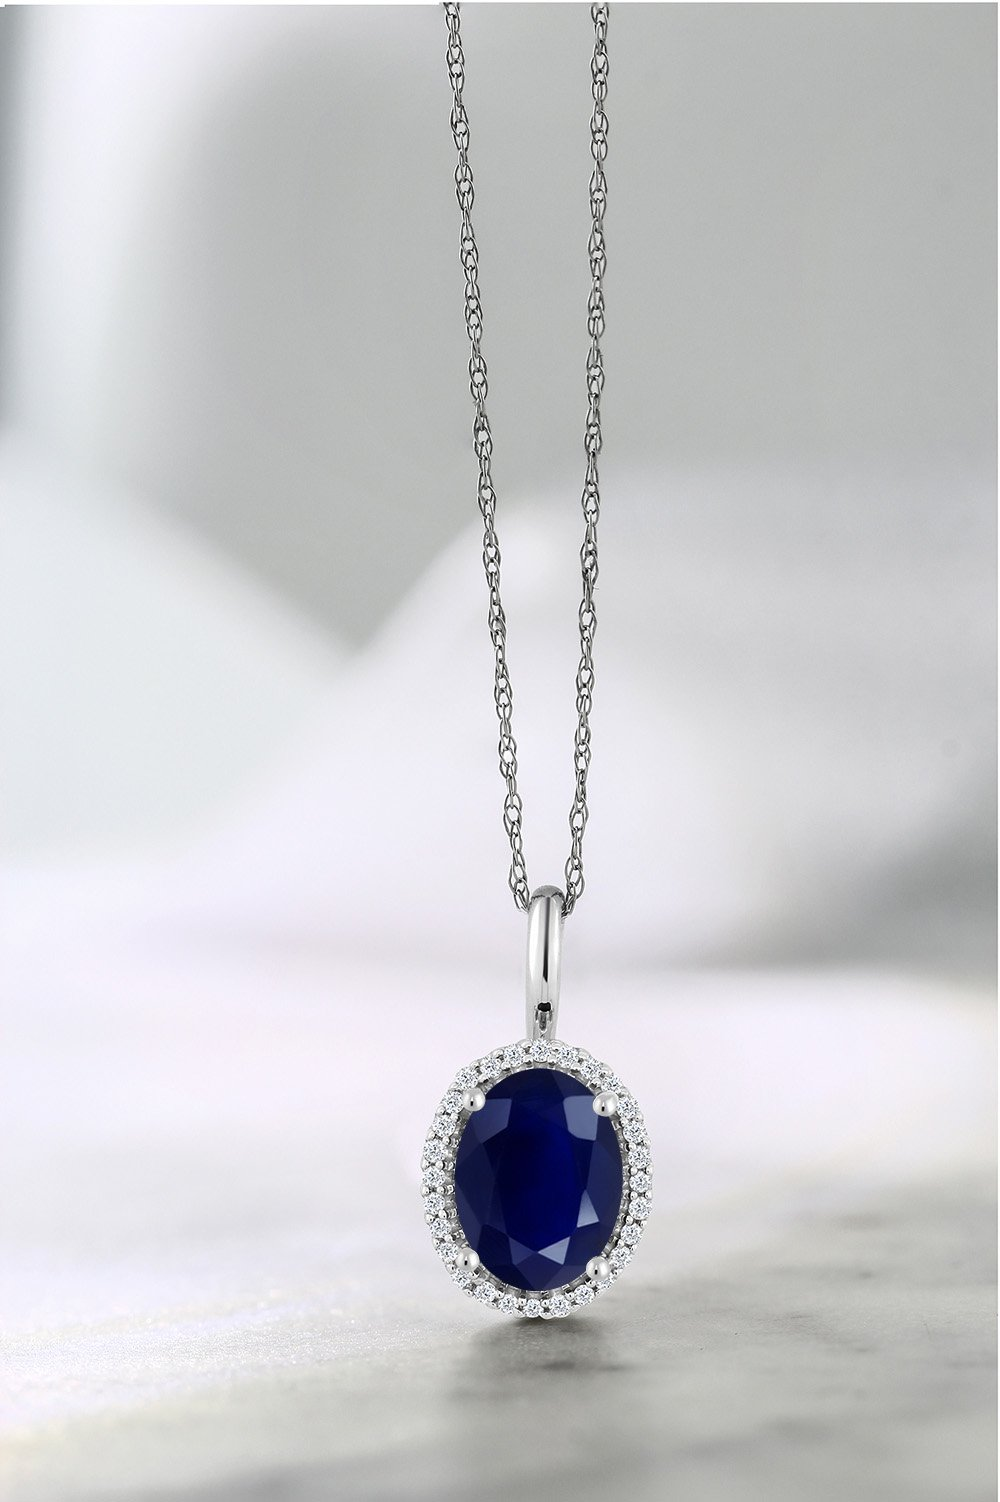 10K White Gold 1.79 Ct Oval Blue Sapphire and Diamonds Pendant With Chain by Gem Stone King (Image #4)